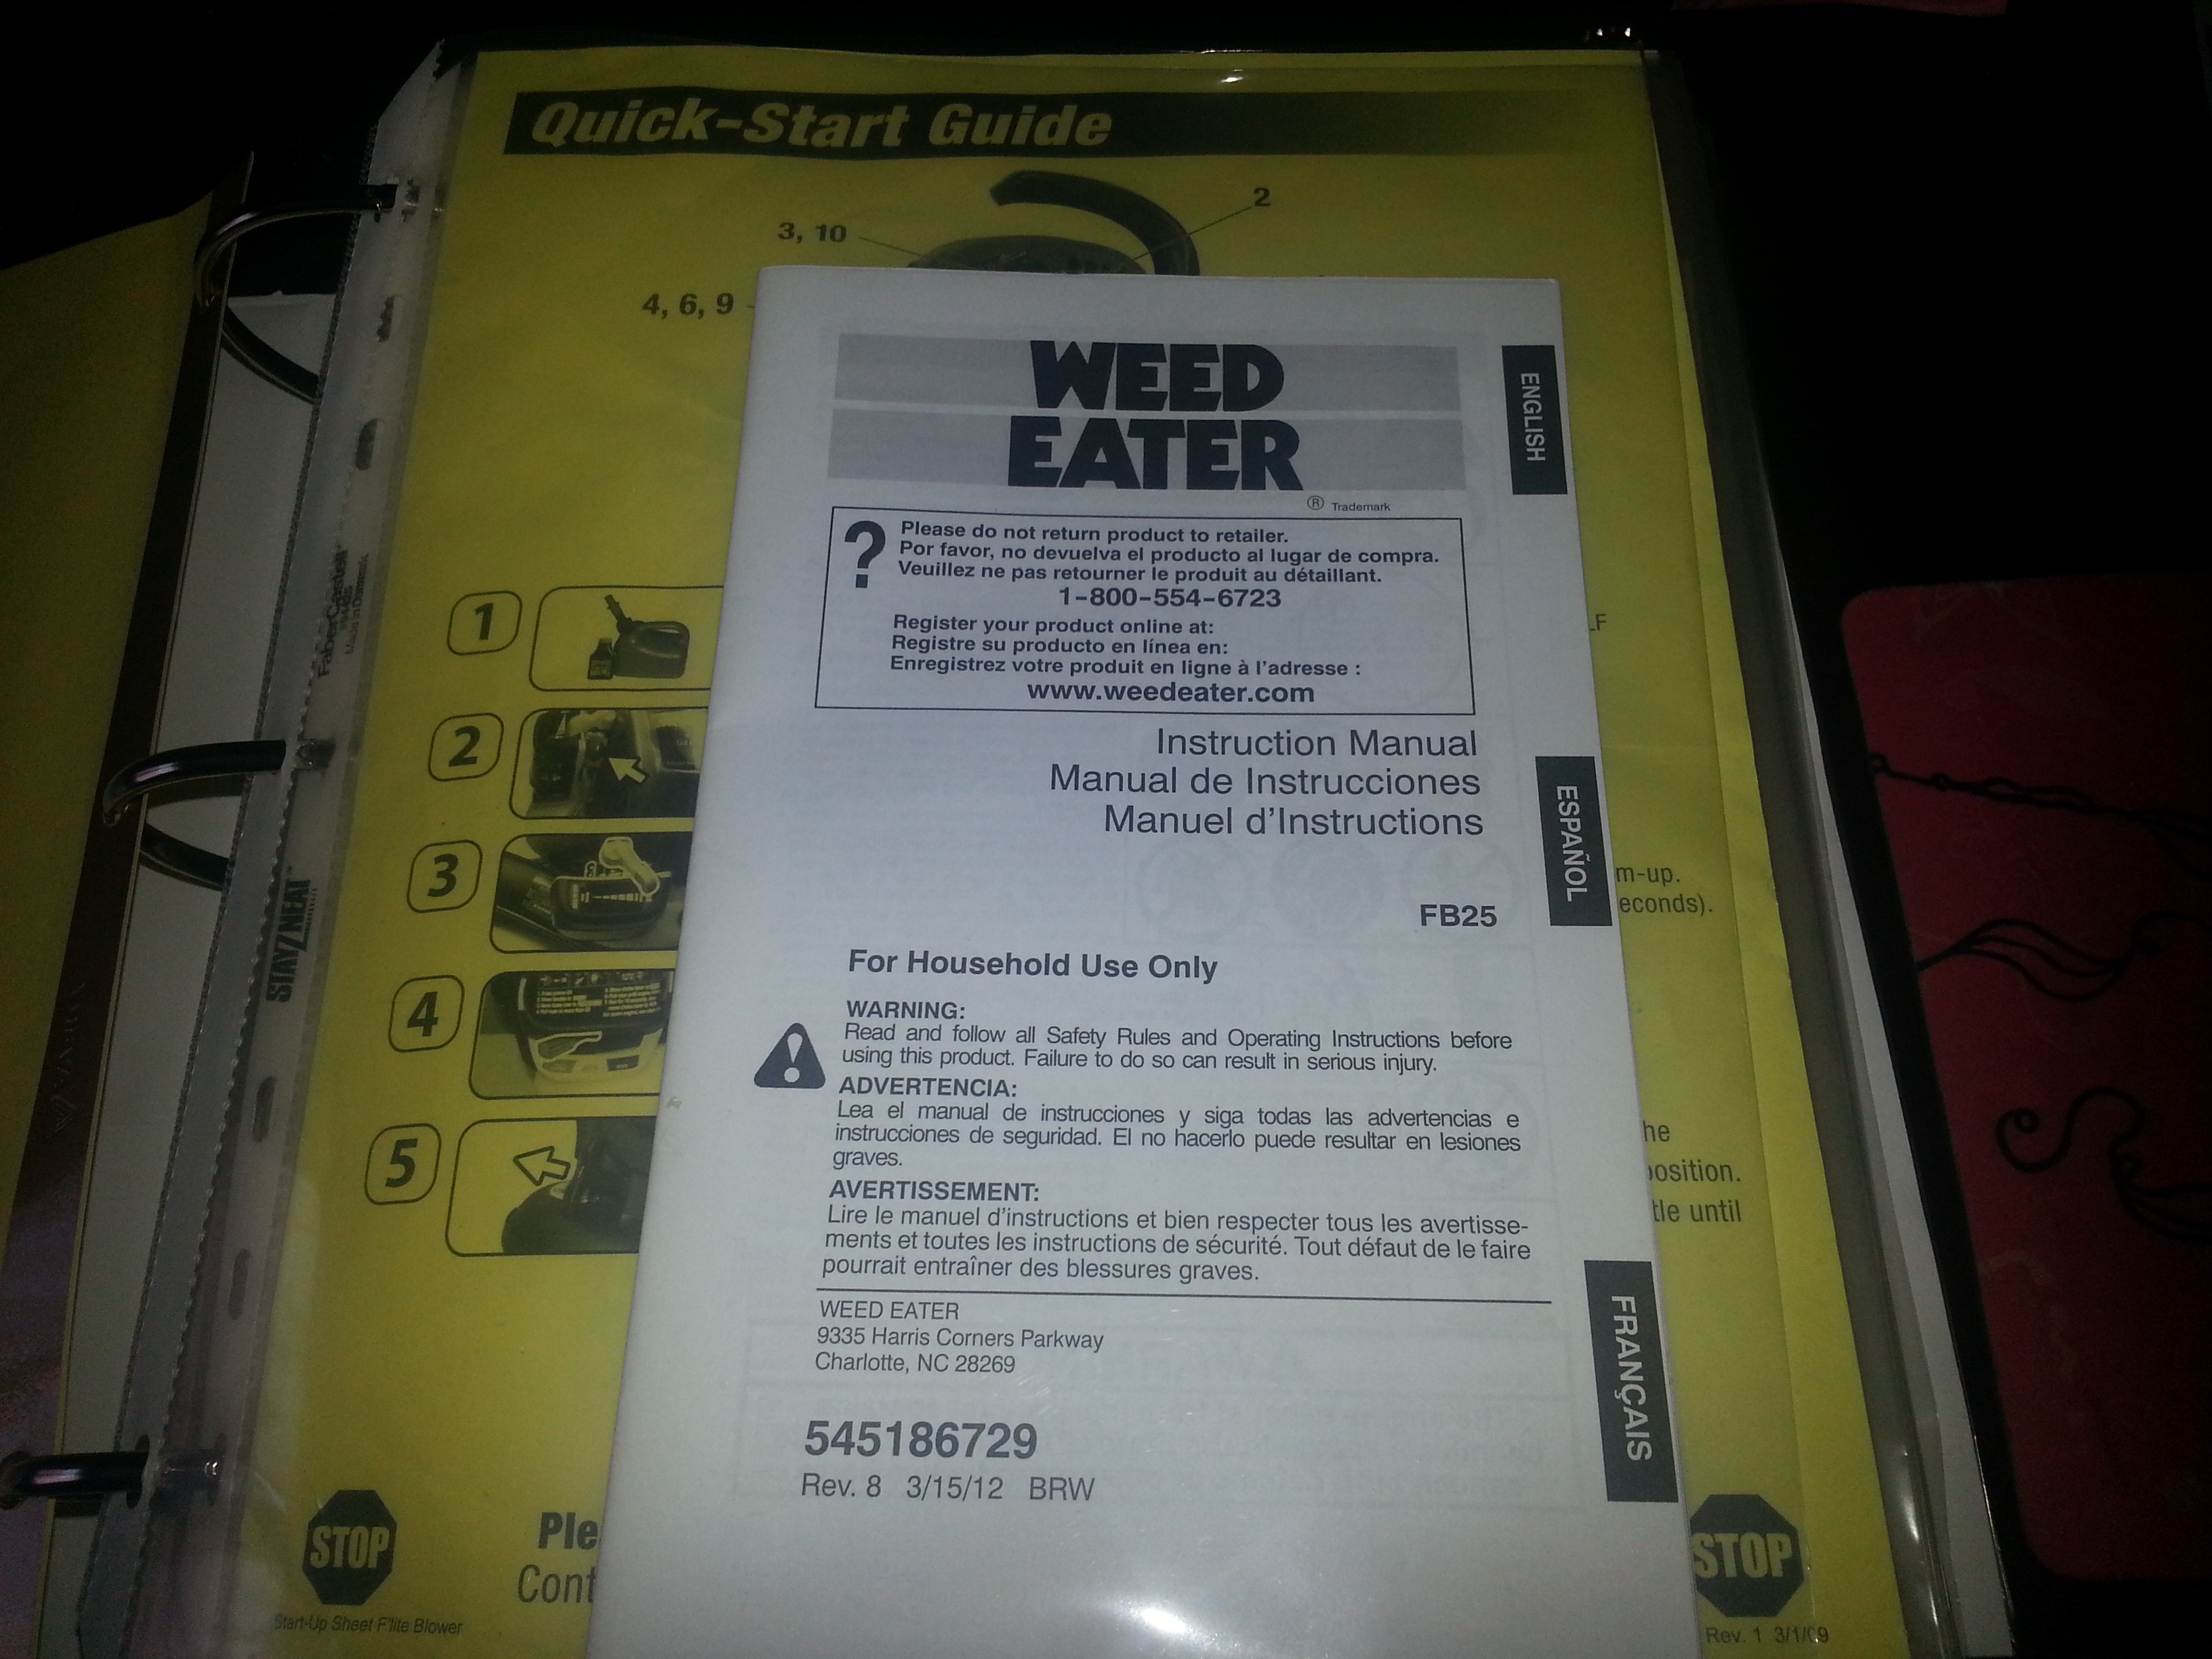 Slip in the warranty, manual and any other relevant information to the item. Here is my weed eater as an example.